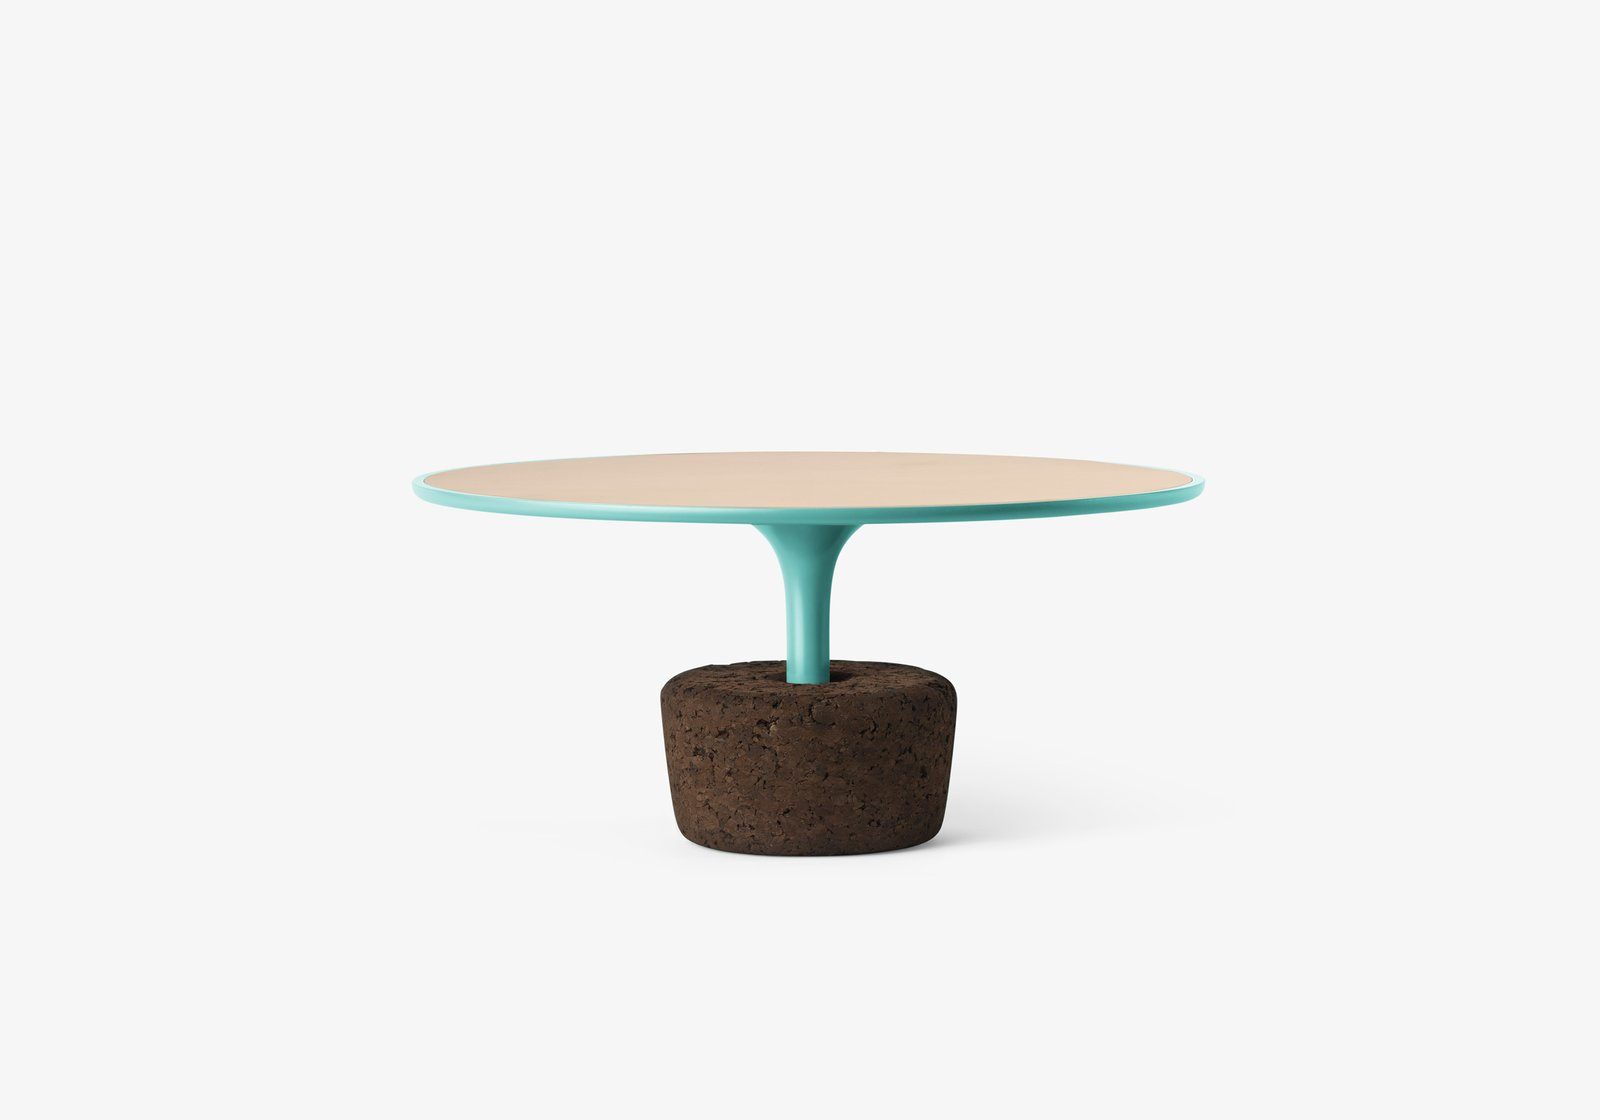 "Flora Wide Low  FLORA is a set of coffee tables that refers to the plants we offer to the ones we love, so there is a similarity between taking care of plants and taking care of the objects. These versatile tables combine natural materials, with four sizes and six different colored frame finishes and may be used separately or together.  Size  Ø65 x H30 cm / Ø25,6'' x H11,8''.  Weight  5,7 kg / 12,6 lbs.   Search ""서초동출장안마【Ø1Ø↔59Ø6↔5334】⊀후불결제⊁서초동출장아가씨추천 서초동콜걸출장안마후기 【S급매니저】서초동콜걸출장마사지 서초동출장샵강추 서초동출장안마모텔7서초동출장맛사지후기"" from Floras"